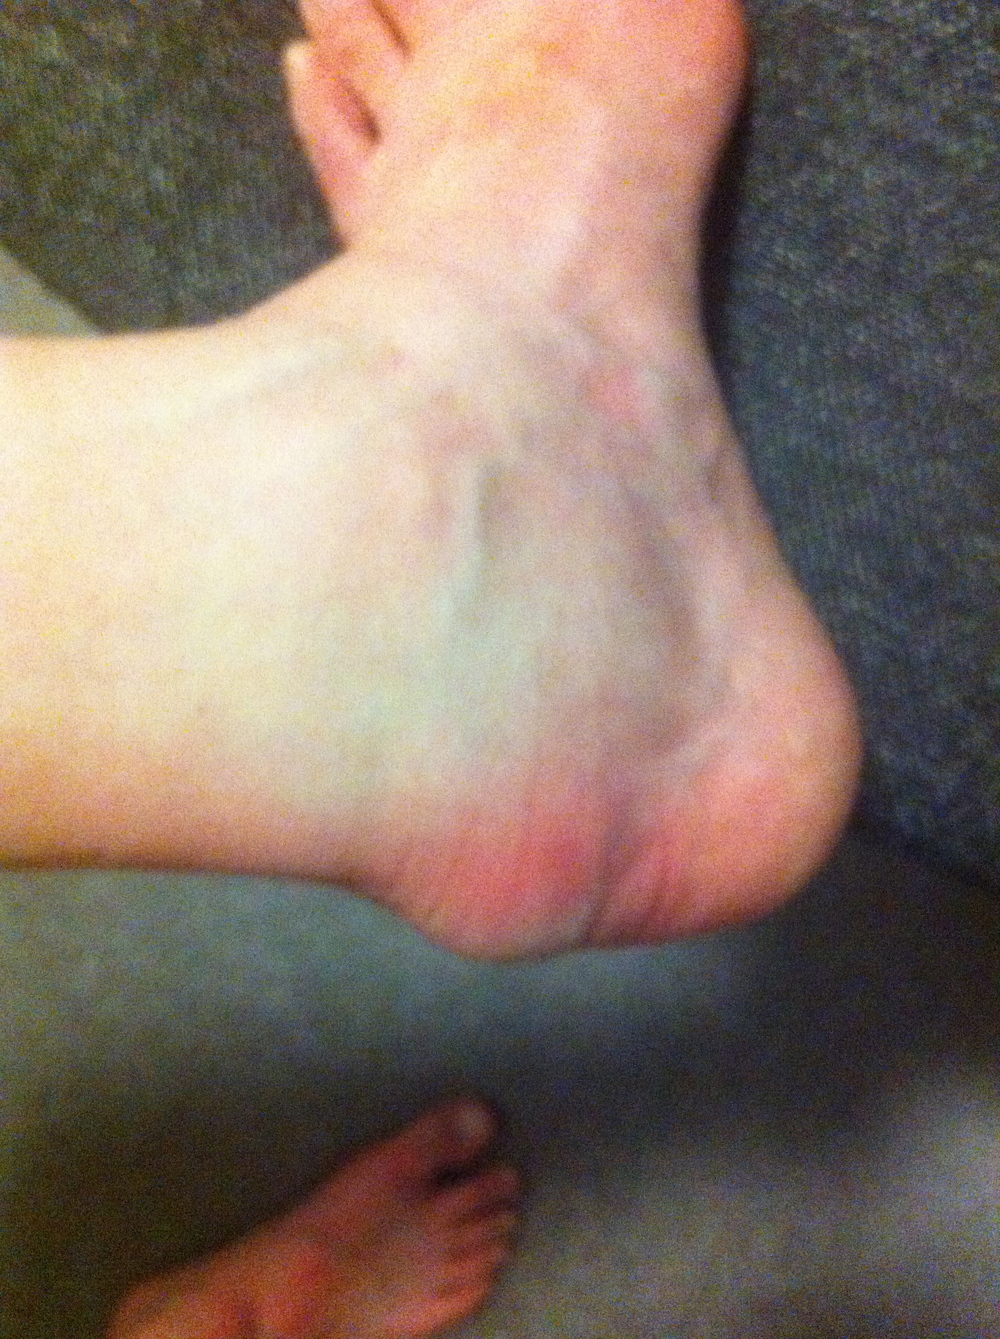 Nice and swollen ankle